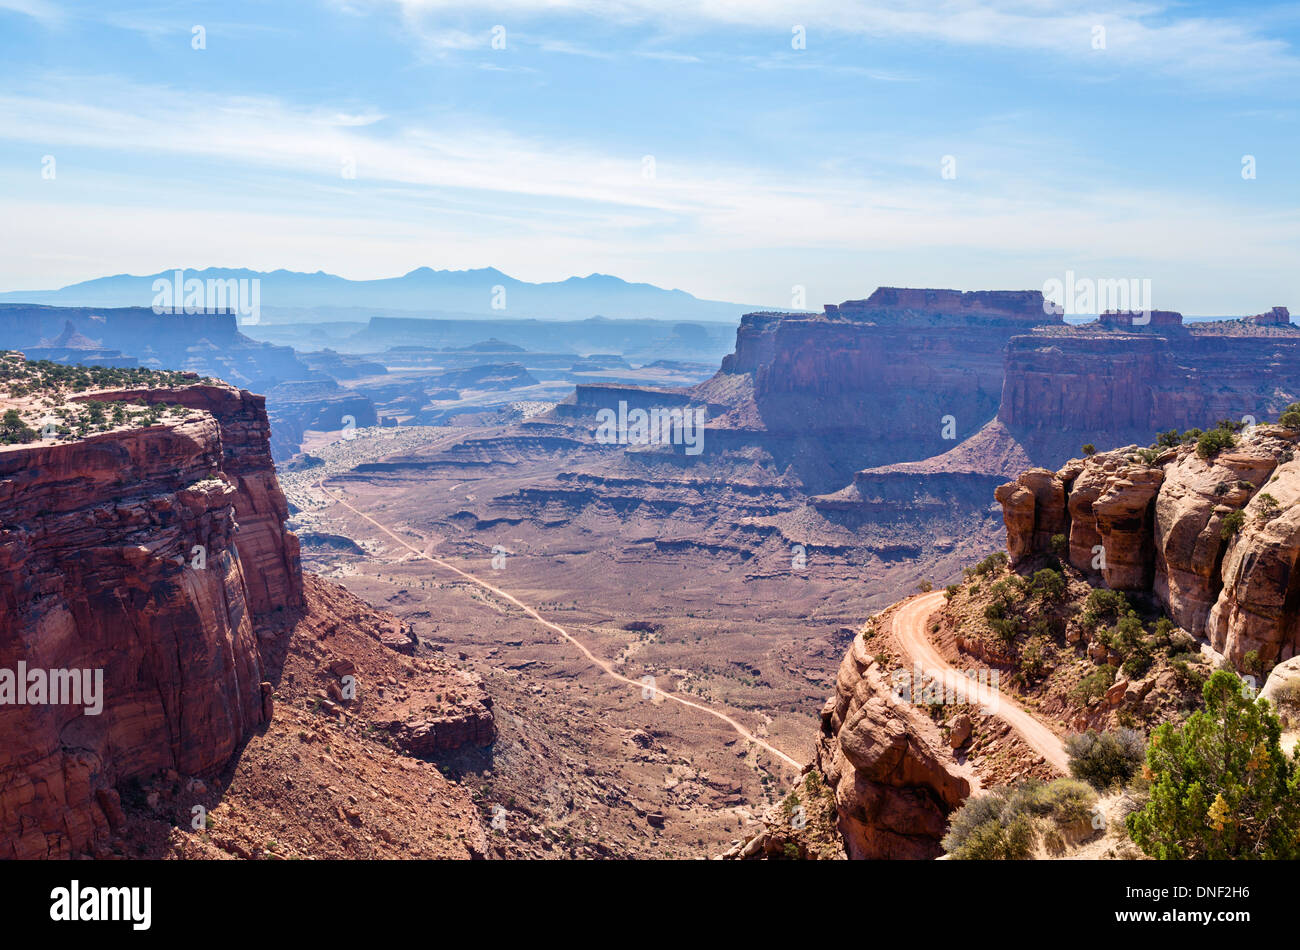 View of Shafer Canyon & Shafer Canyon Road from outside Visitor Center, Island in the Sky, Canyonlands National Park, Utah, USA - Stock Image